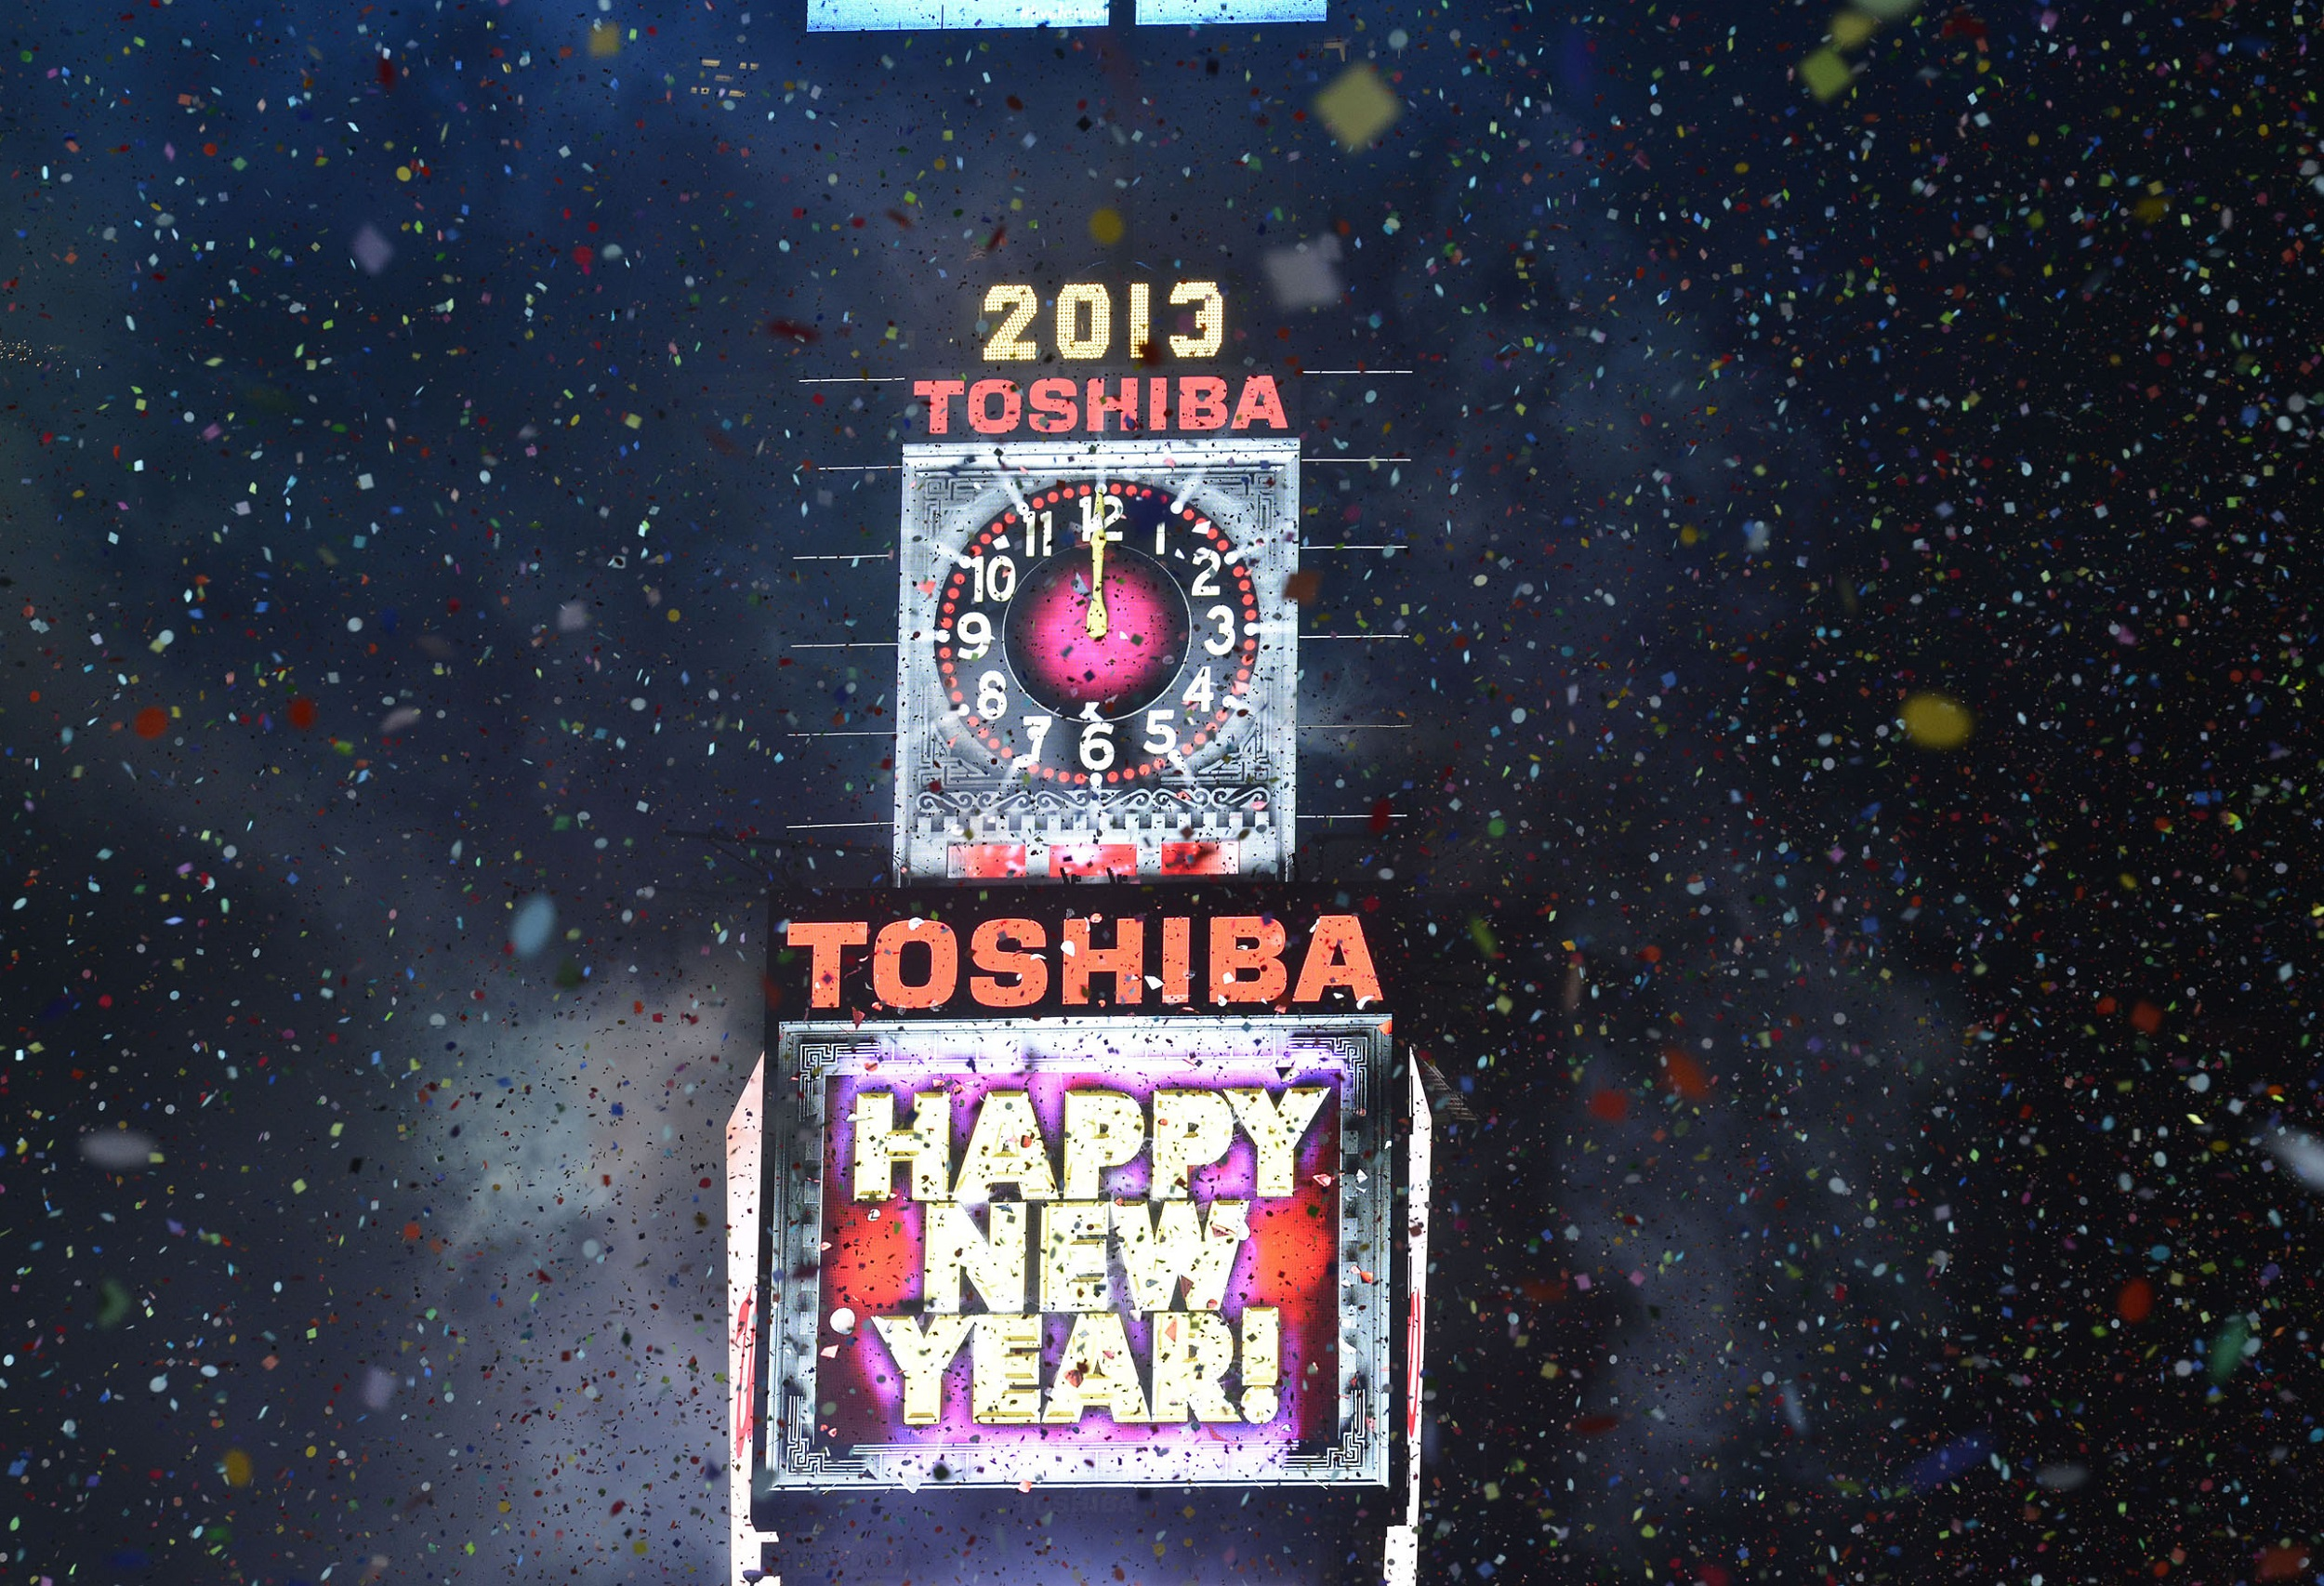 159041226 EG 8613 43C03FFF7F27A5A7F982556F45767AE5 Toshiba Celebrates New Years Eve with Toshiba Vision Screen